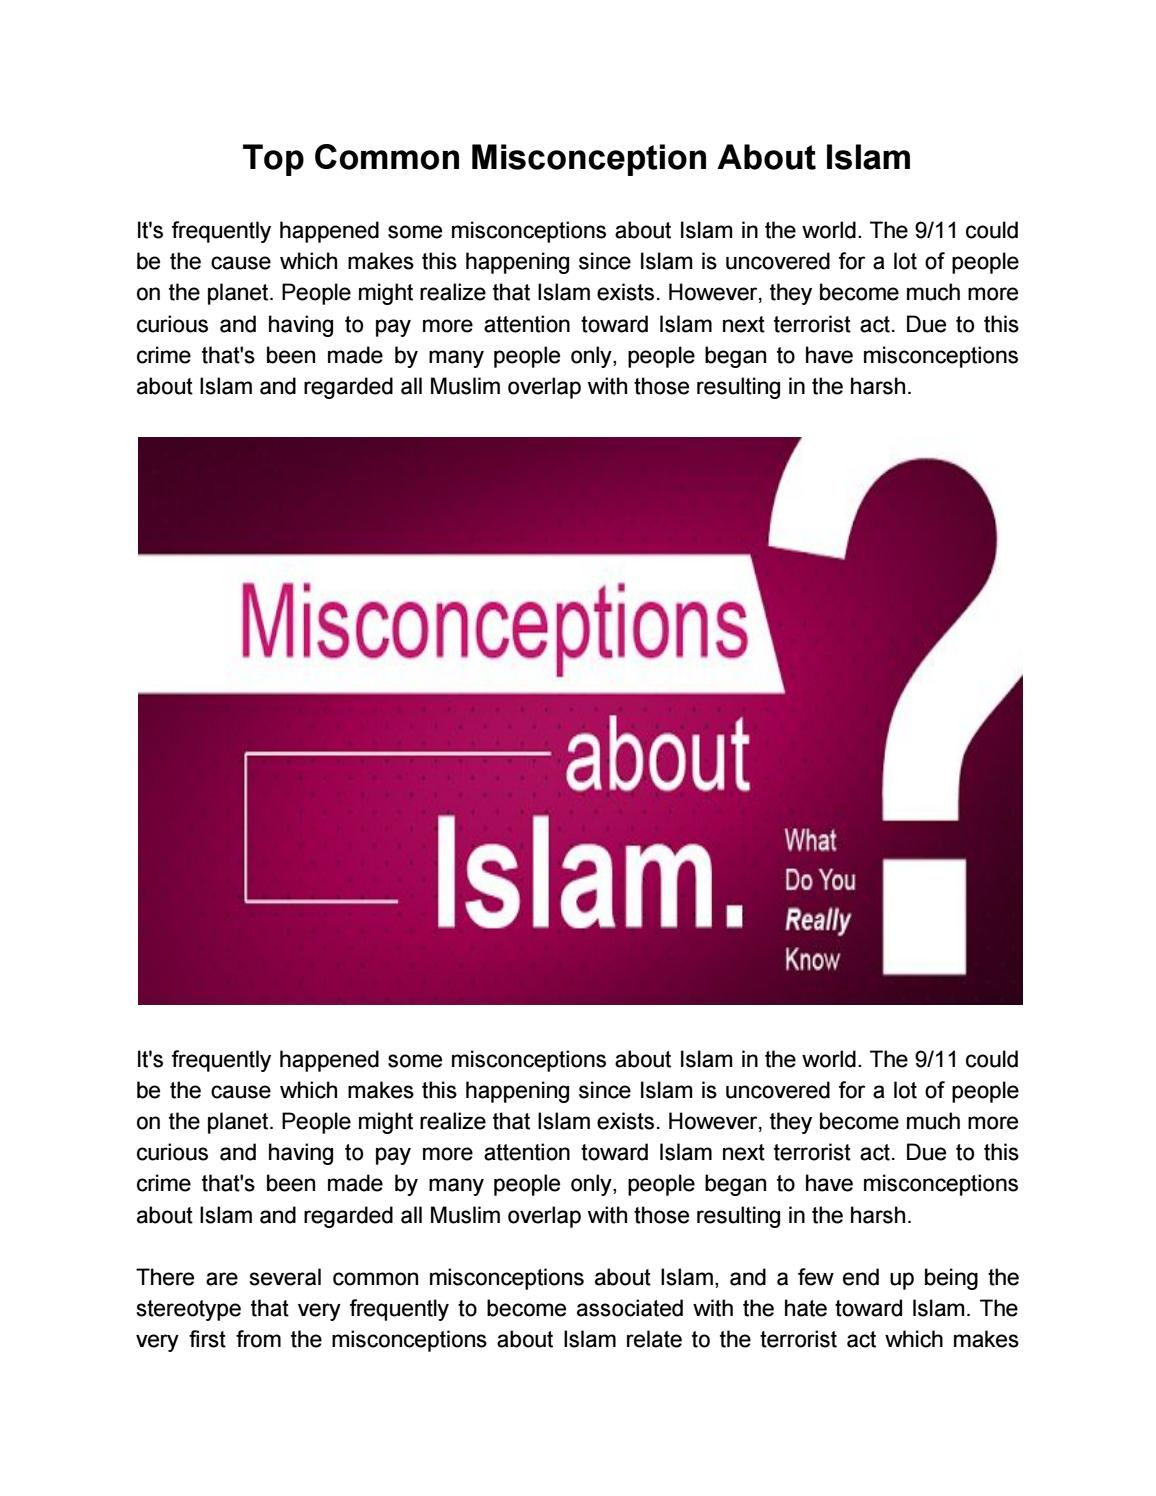 Common Misconceptions About Islam 89